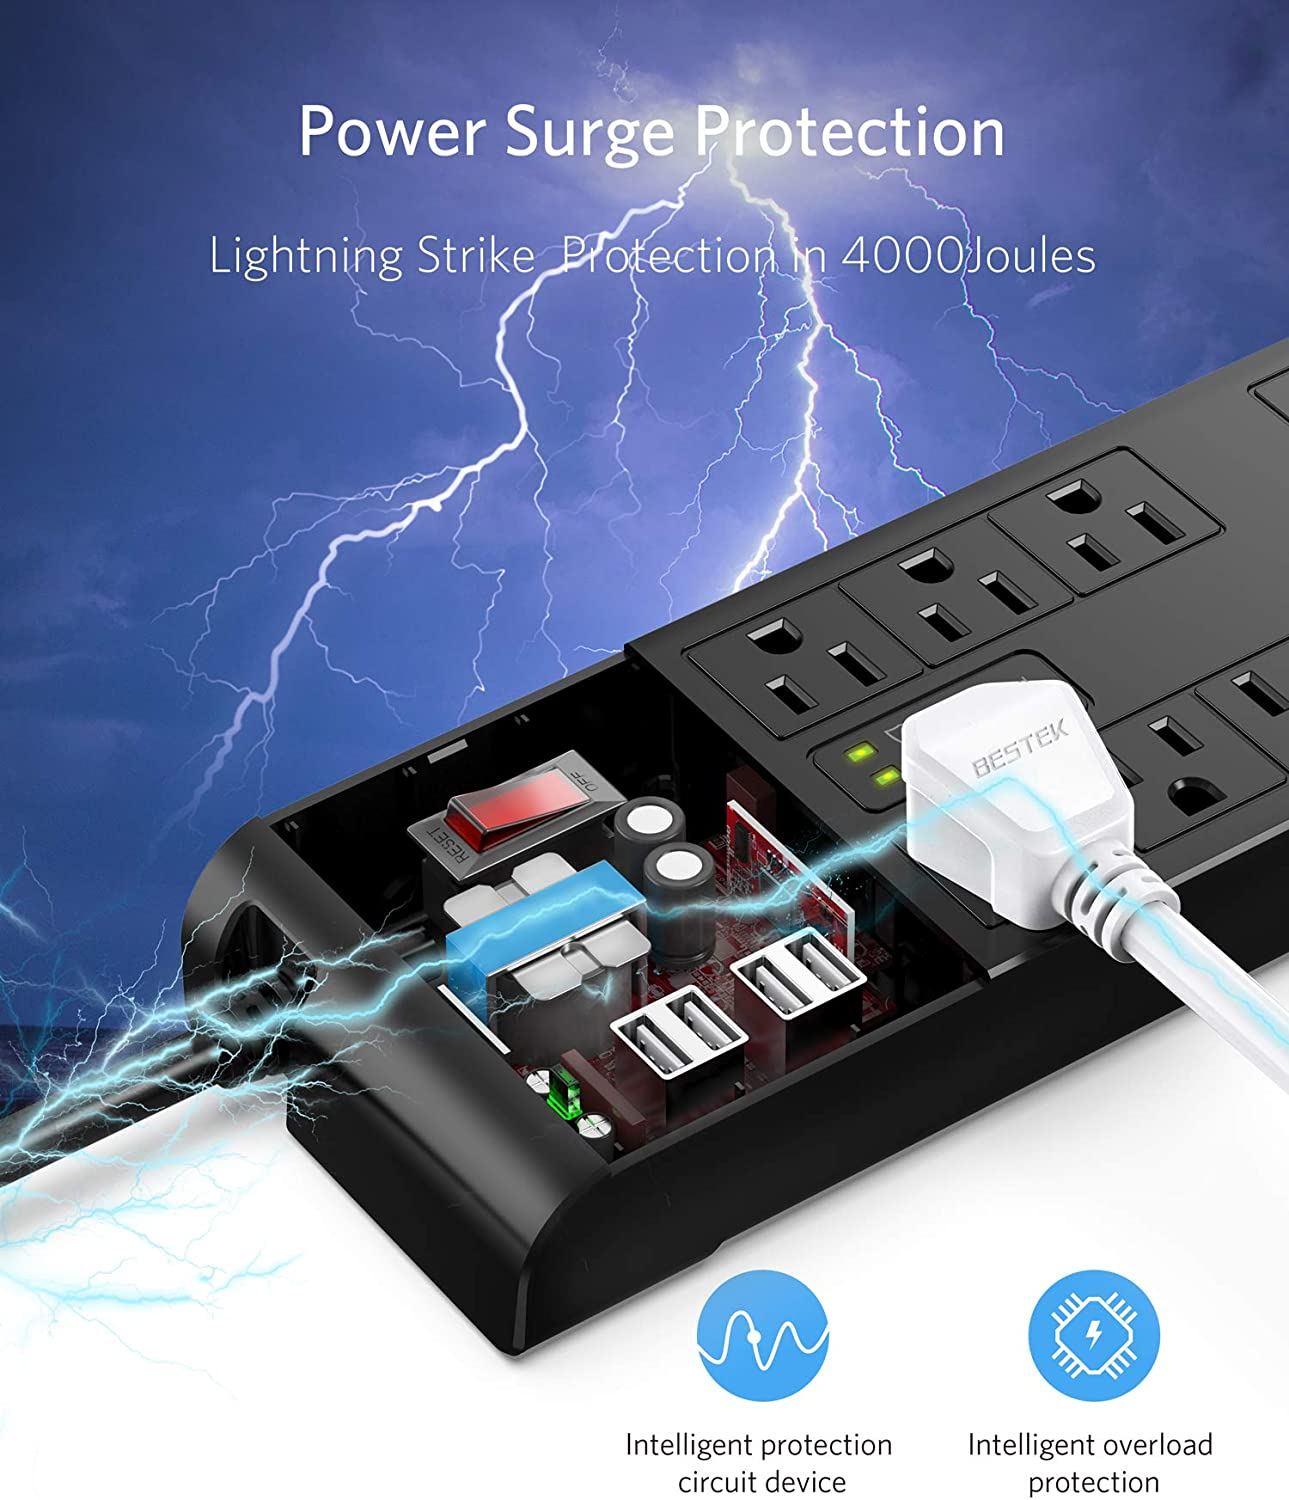 BESTEK 4,000 Joules Surge Protector with USB,6 Feet Extension Cord Power Strip with 8 AC Outlets 15A 1875W,5V 4.2A 4 USB Charging Ports Desktop Charging Station,Wide Spaced Outlet for Large Plug,Black